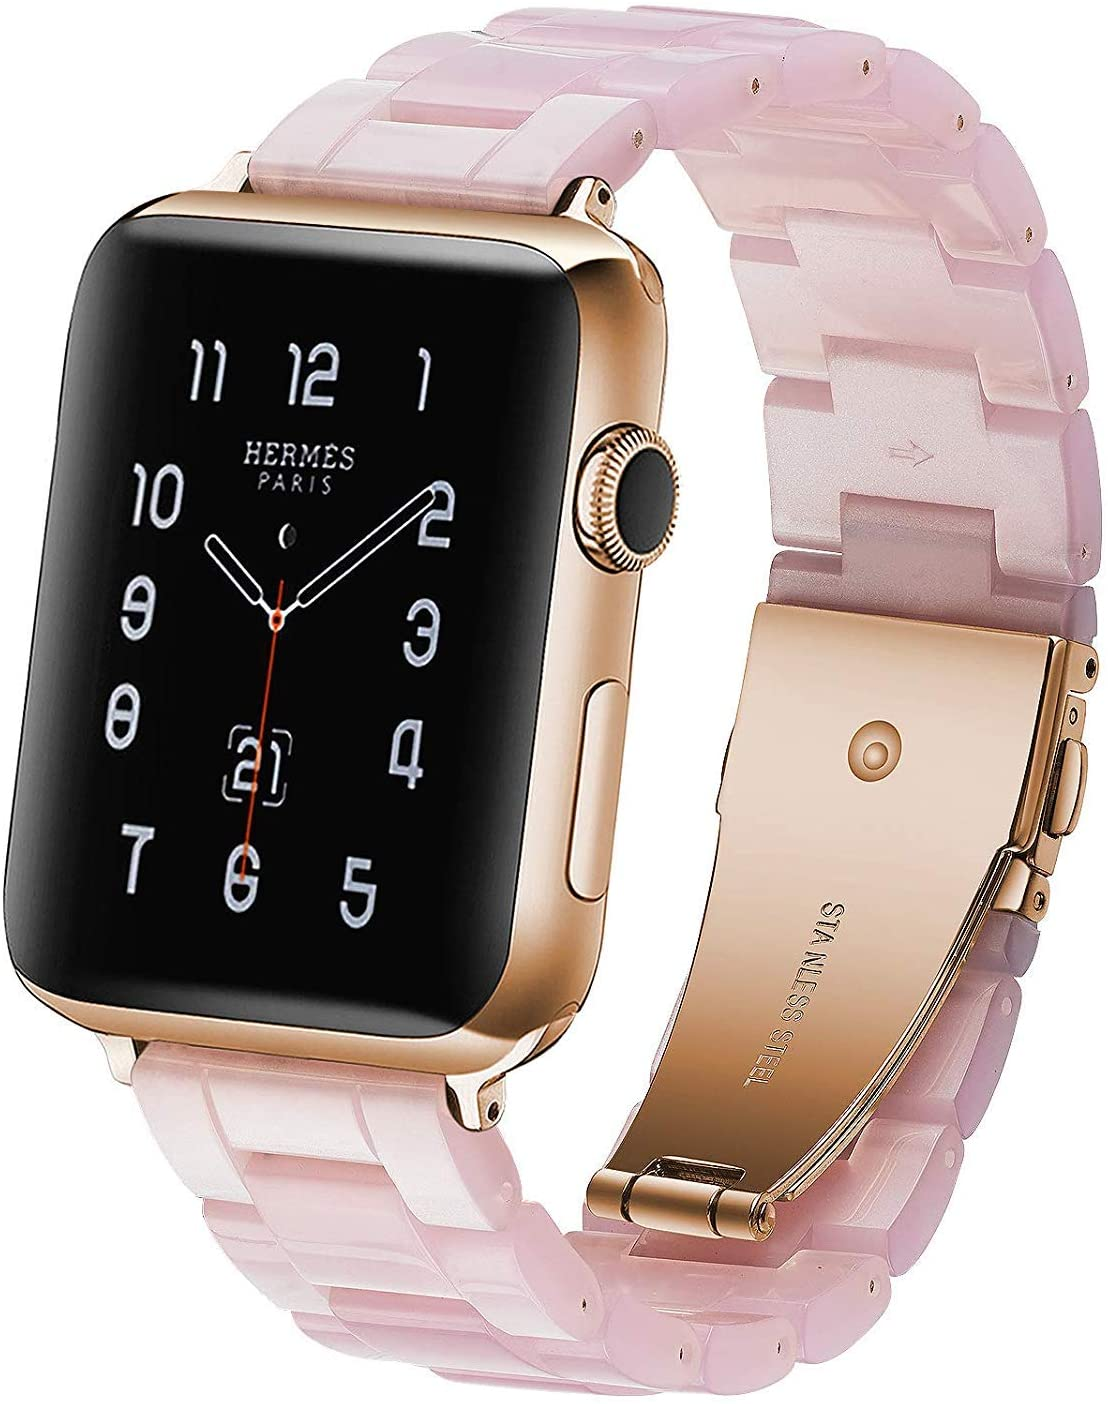 Resin Strap Compatible with Apple Watch Band 42mm 44mm Series 5/4/3/2/1 Women Men with Stainless Steel Buckle, Apple iWatch Replacement Wristband Bracelet (Pink, 42mm/44mm)